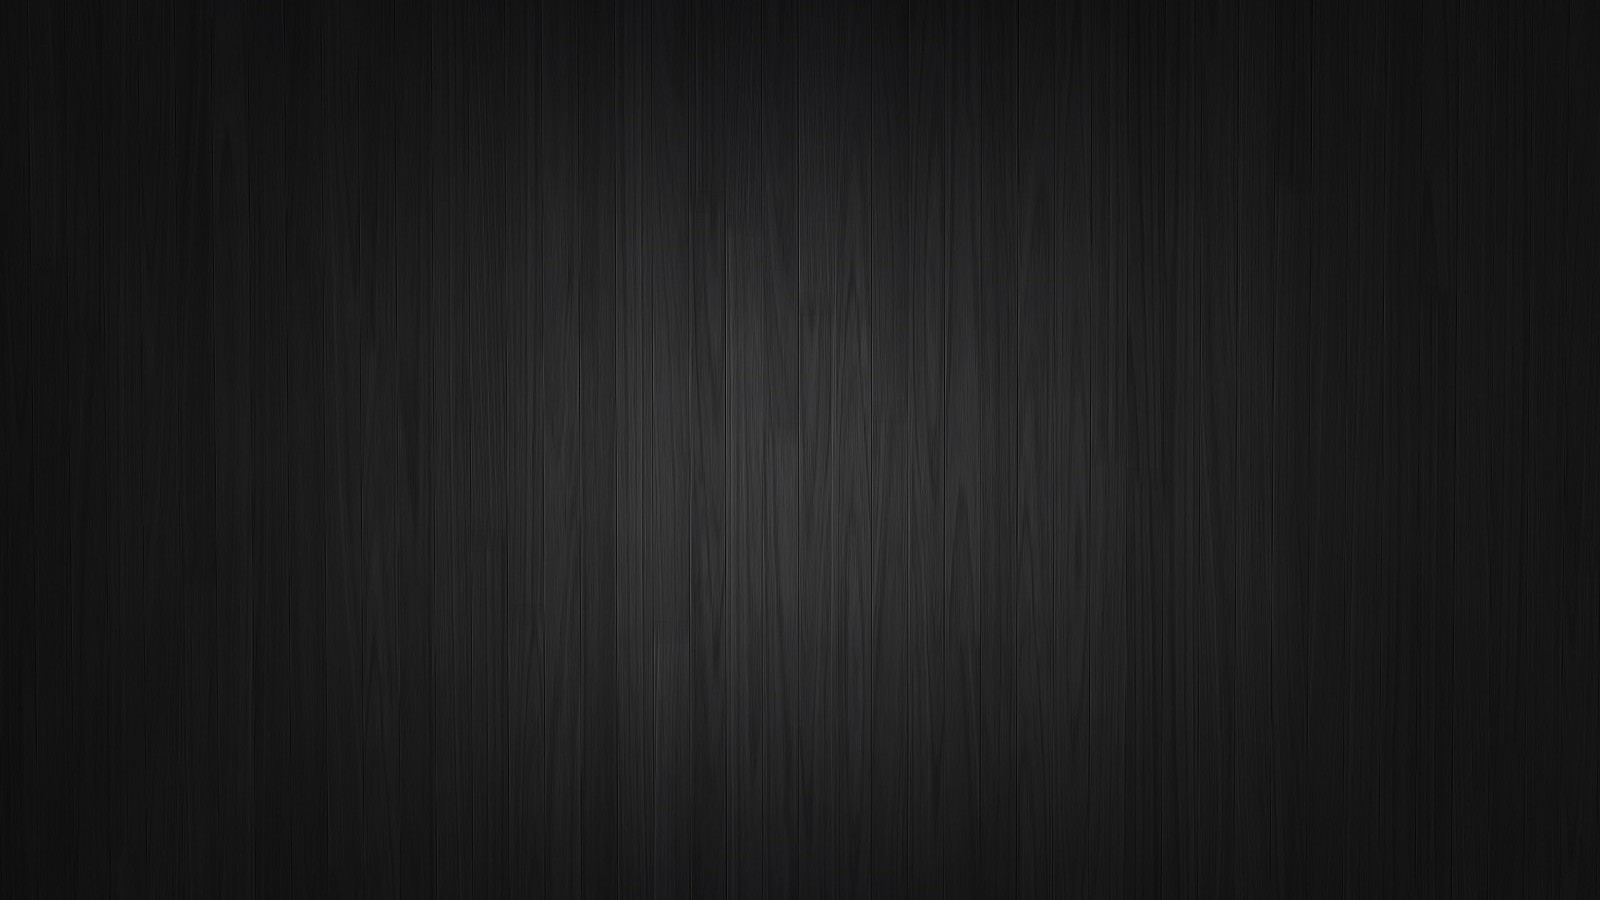 Dark Background Powerpoint Backgrounds For Free Powerpoint Templates